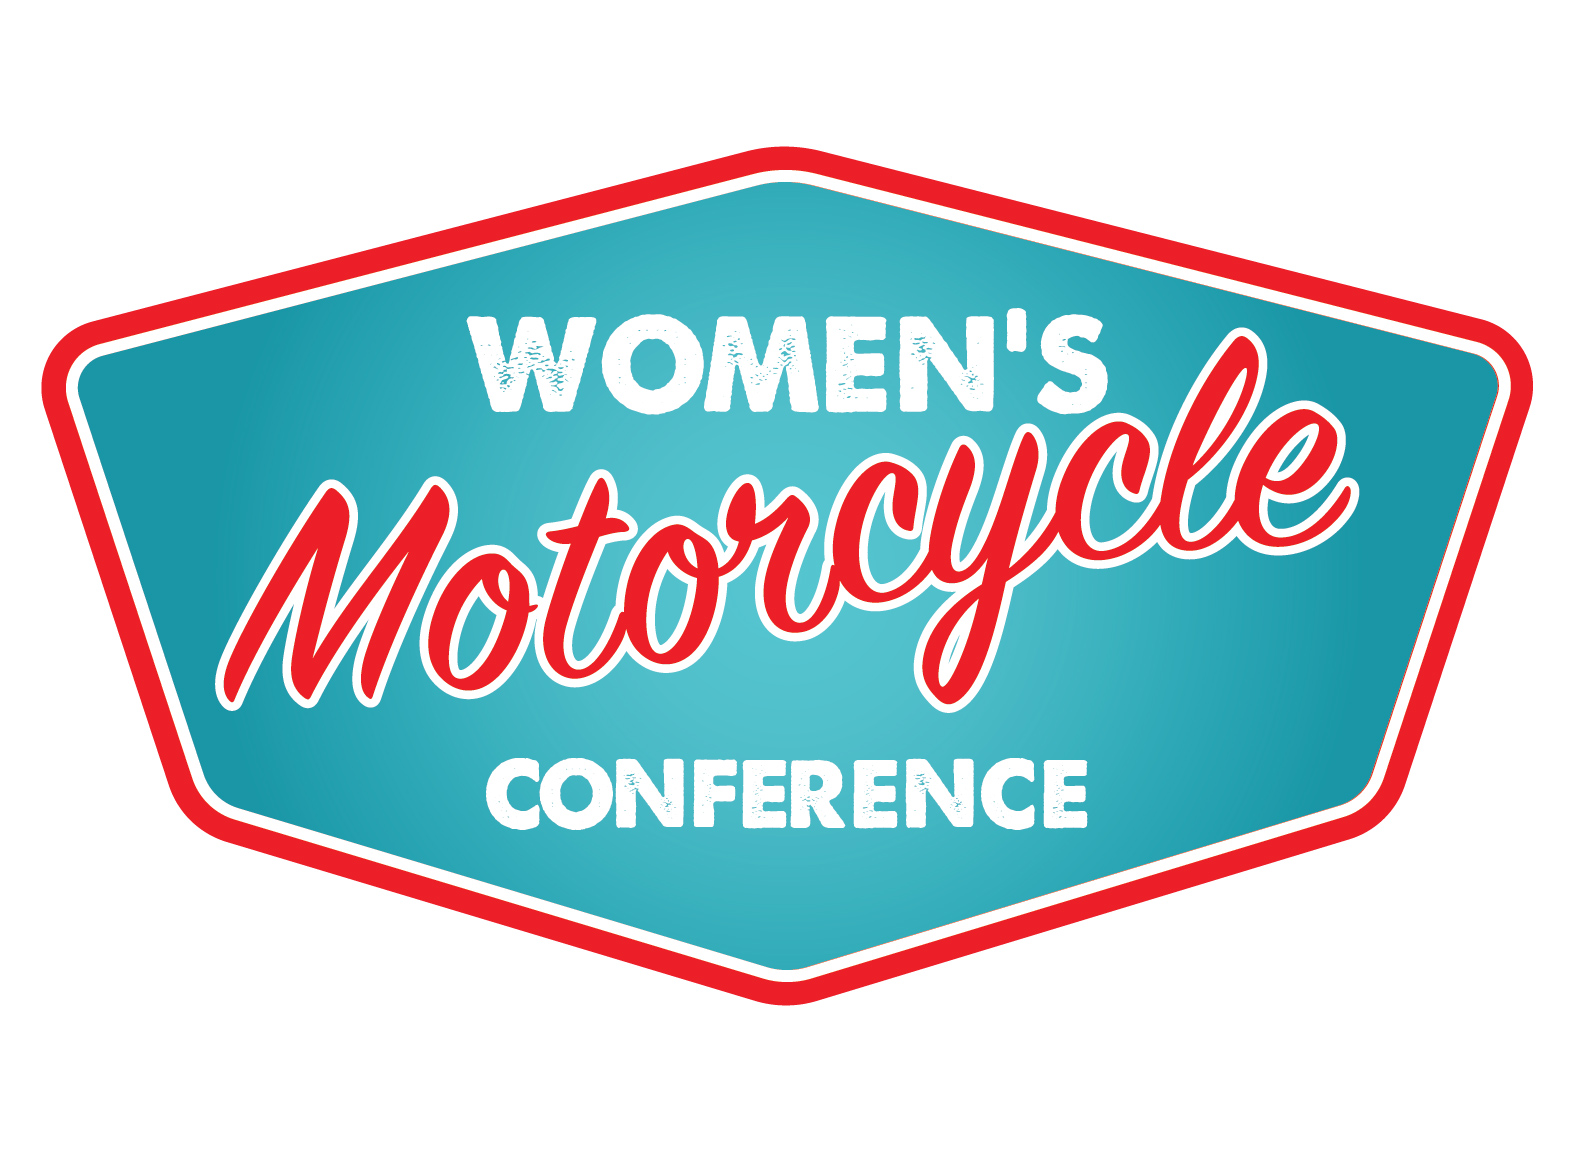 Women's Motorcycle Conference